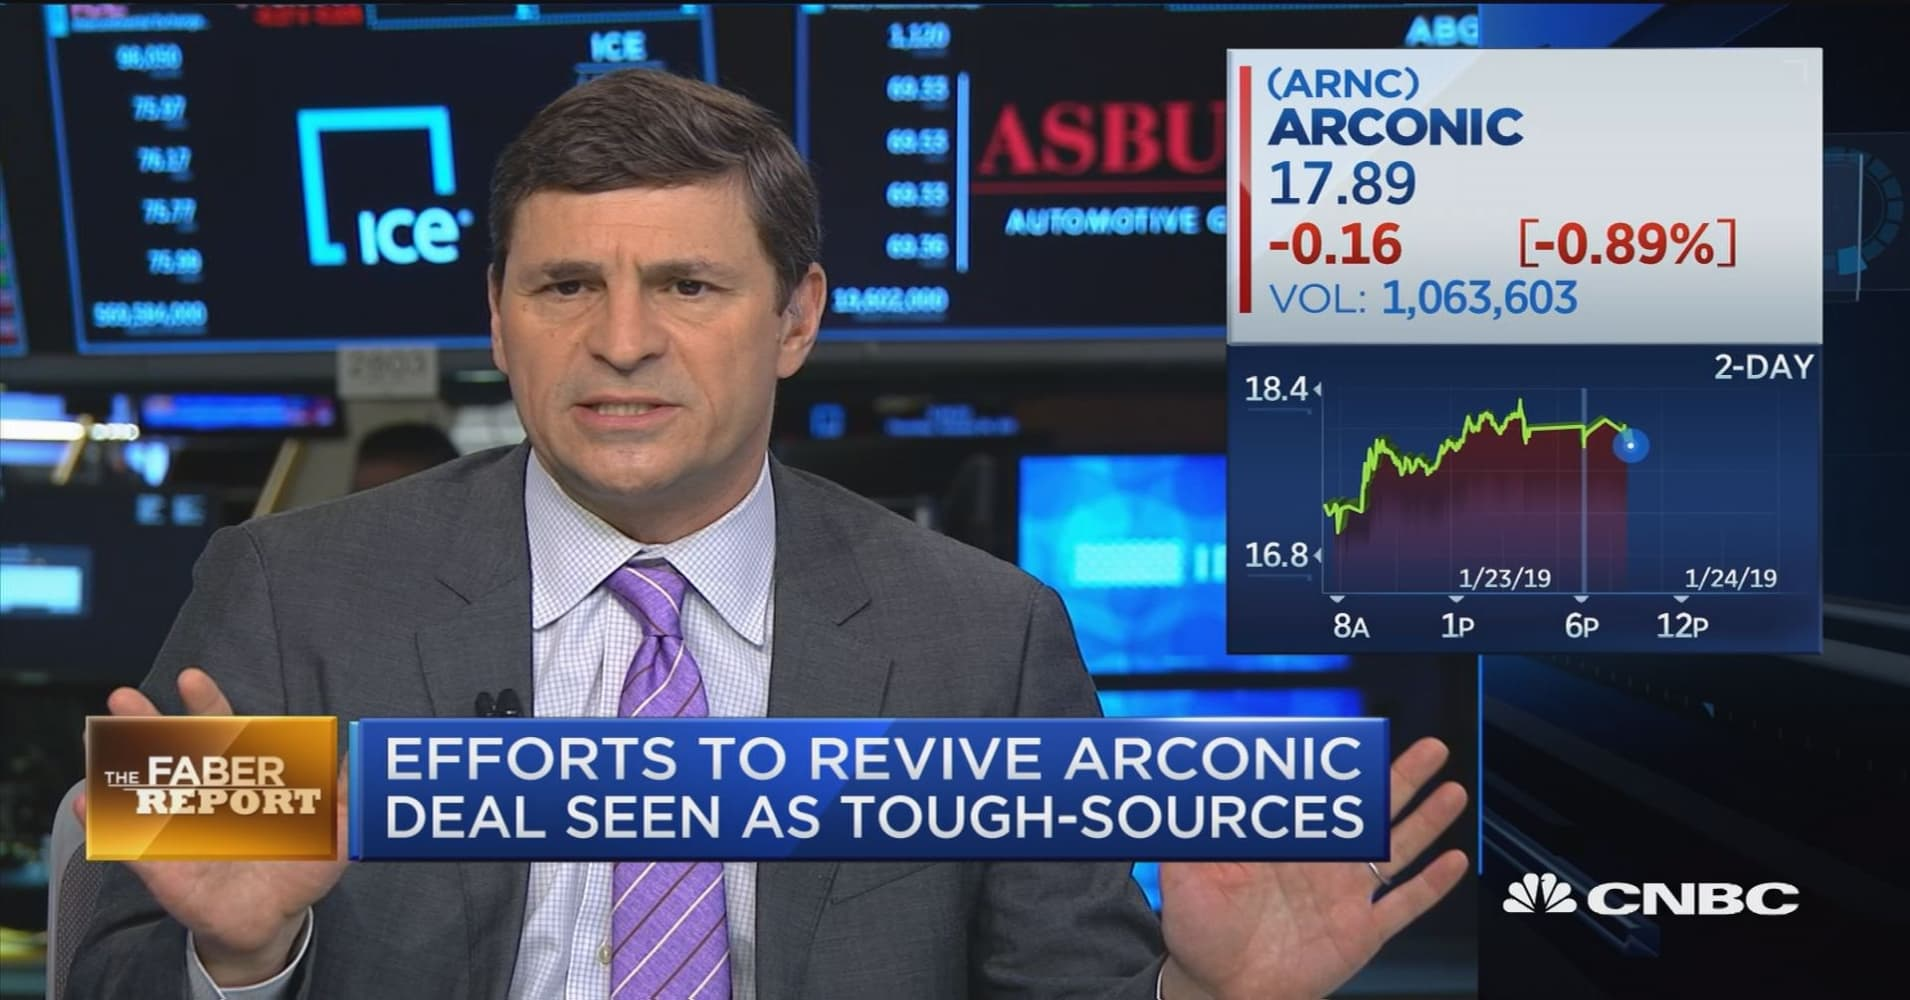 Efforts to revive Arconic deal remain tough, sources says